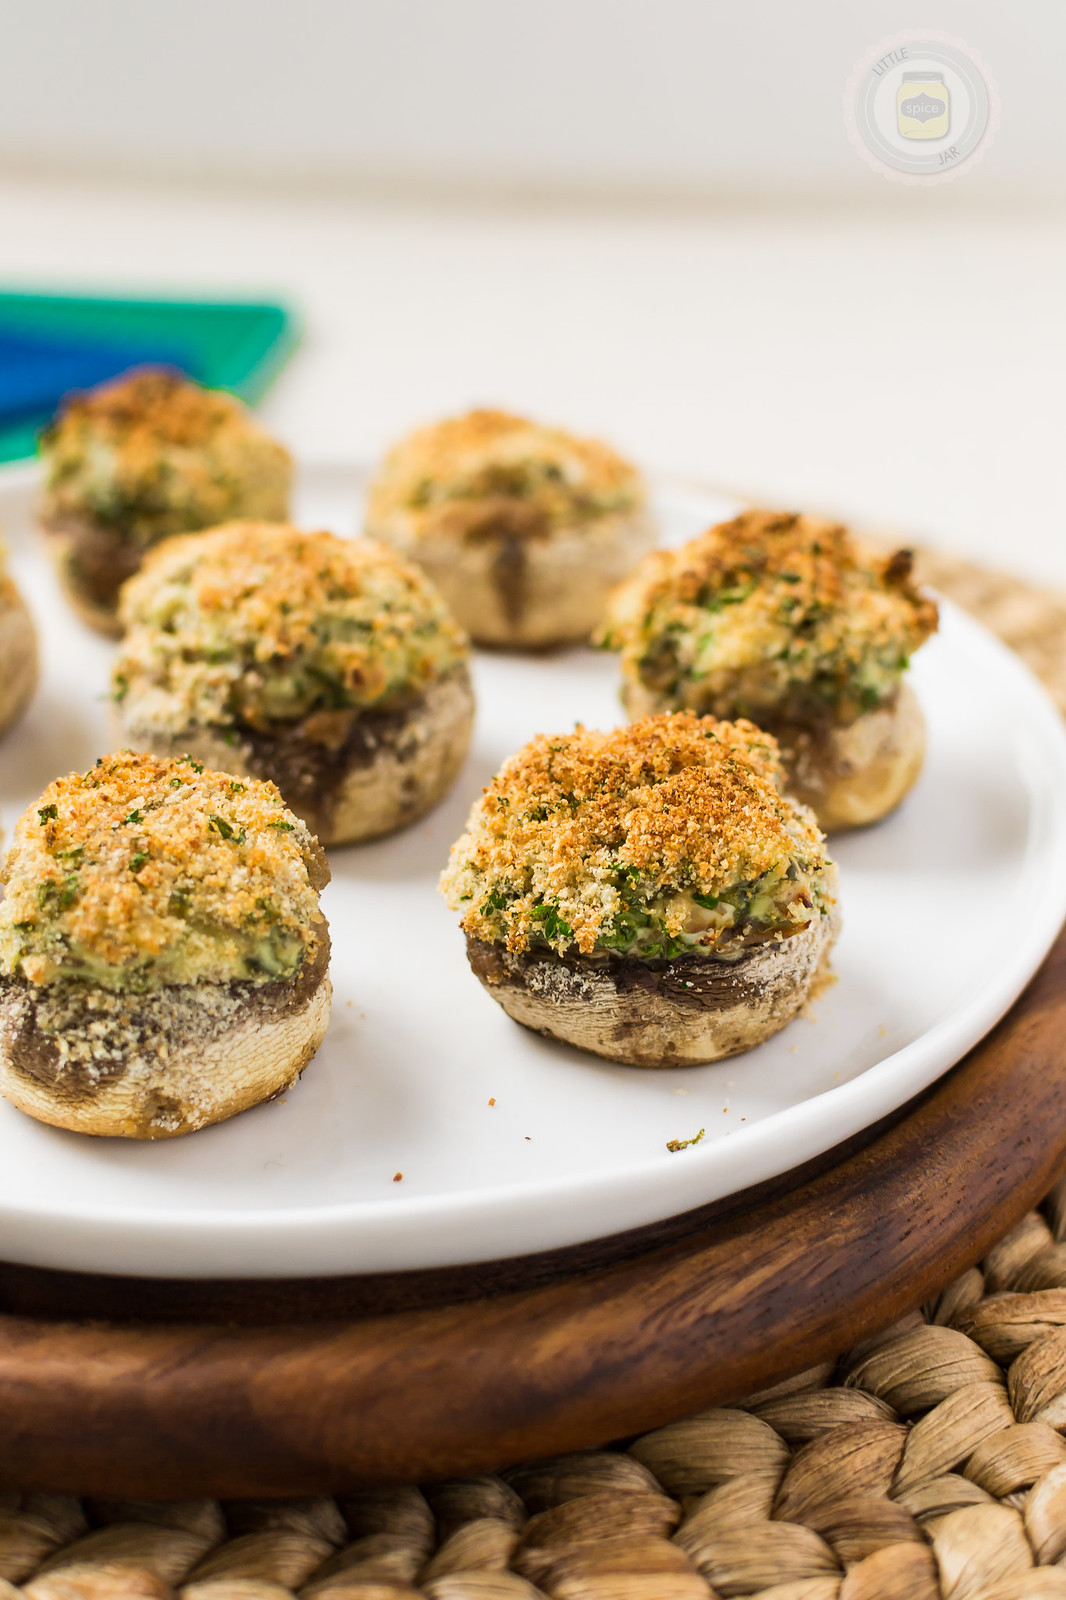 Spinach and Cream Cheese Stuffed Mushrooms Baked Vertical Closeup